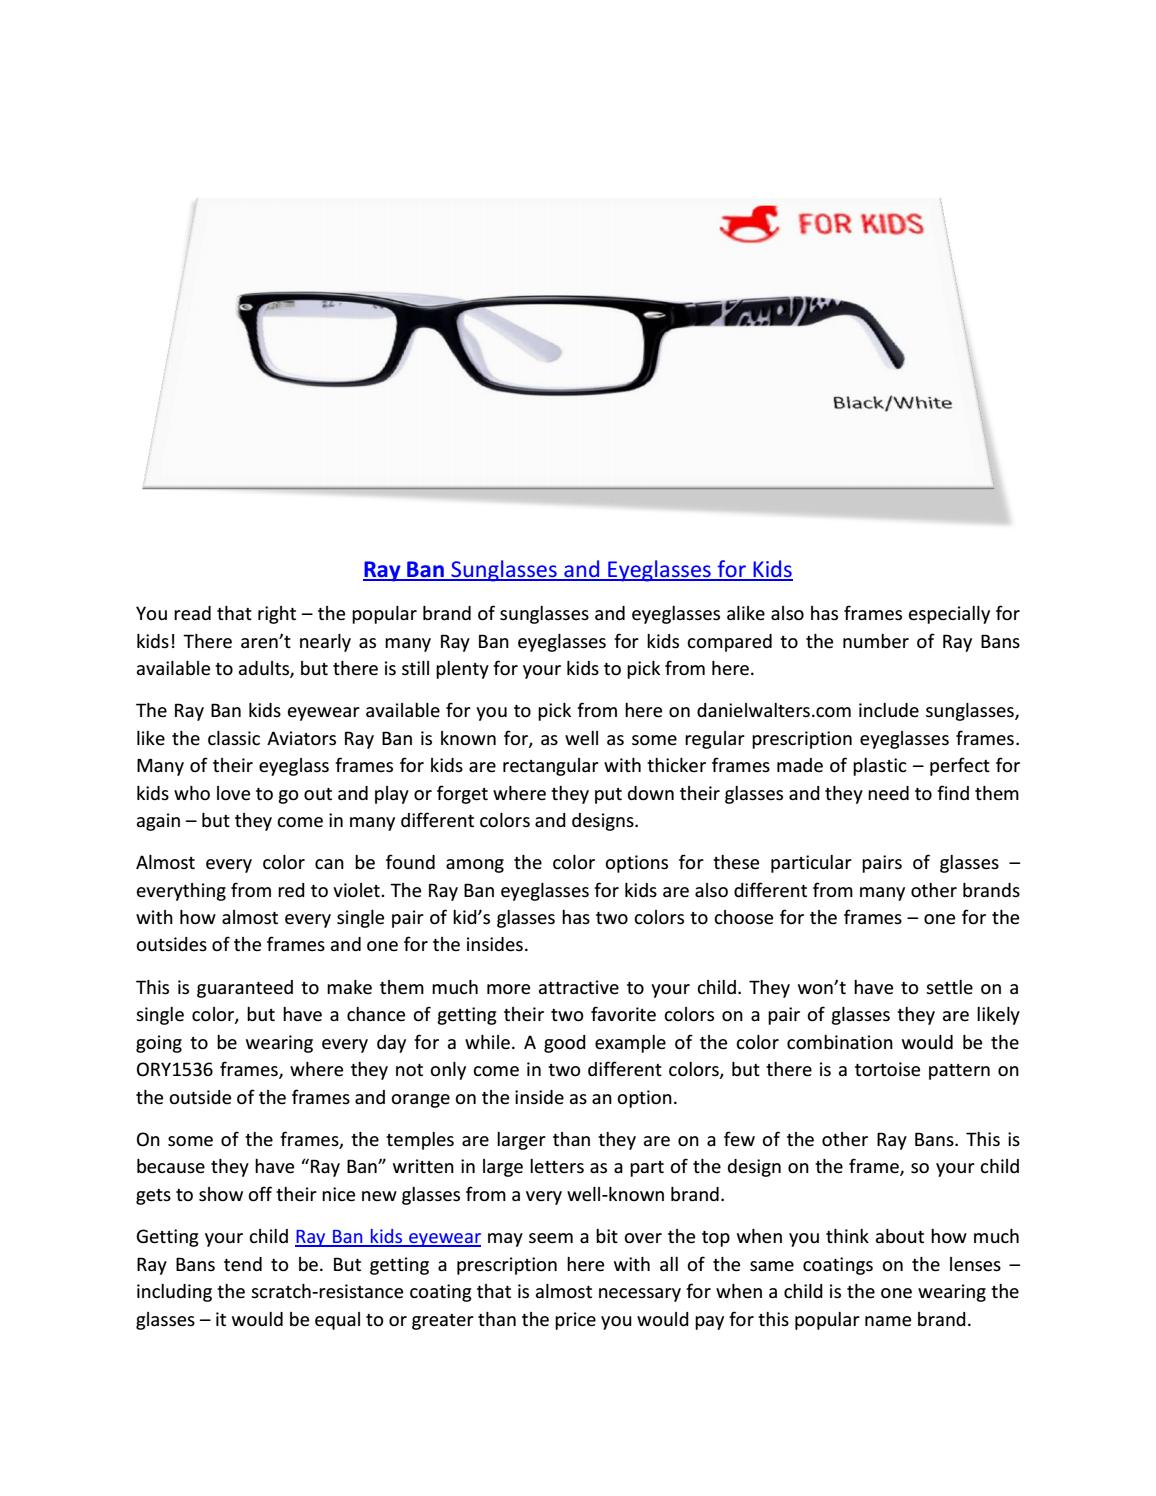 RayBan Sunglasses and Eyeglasses for Kids by Daniel Walters Eyewear ...